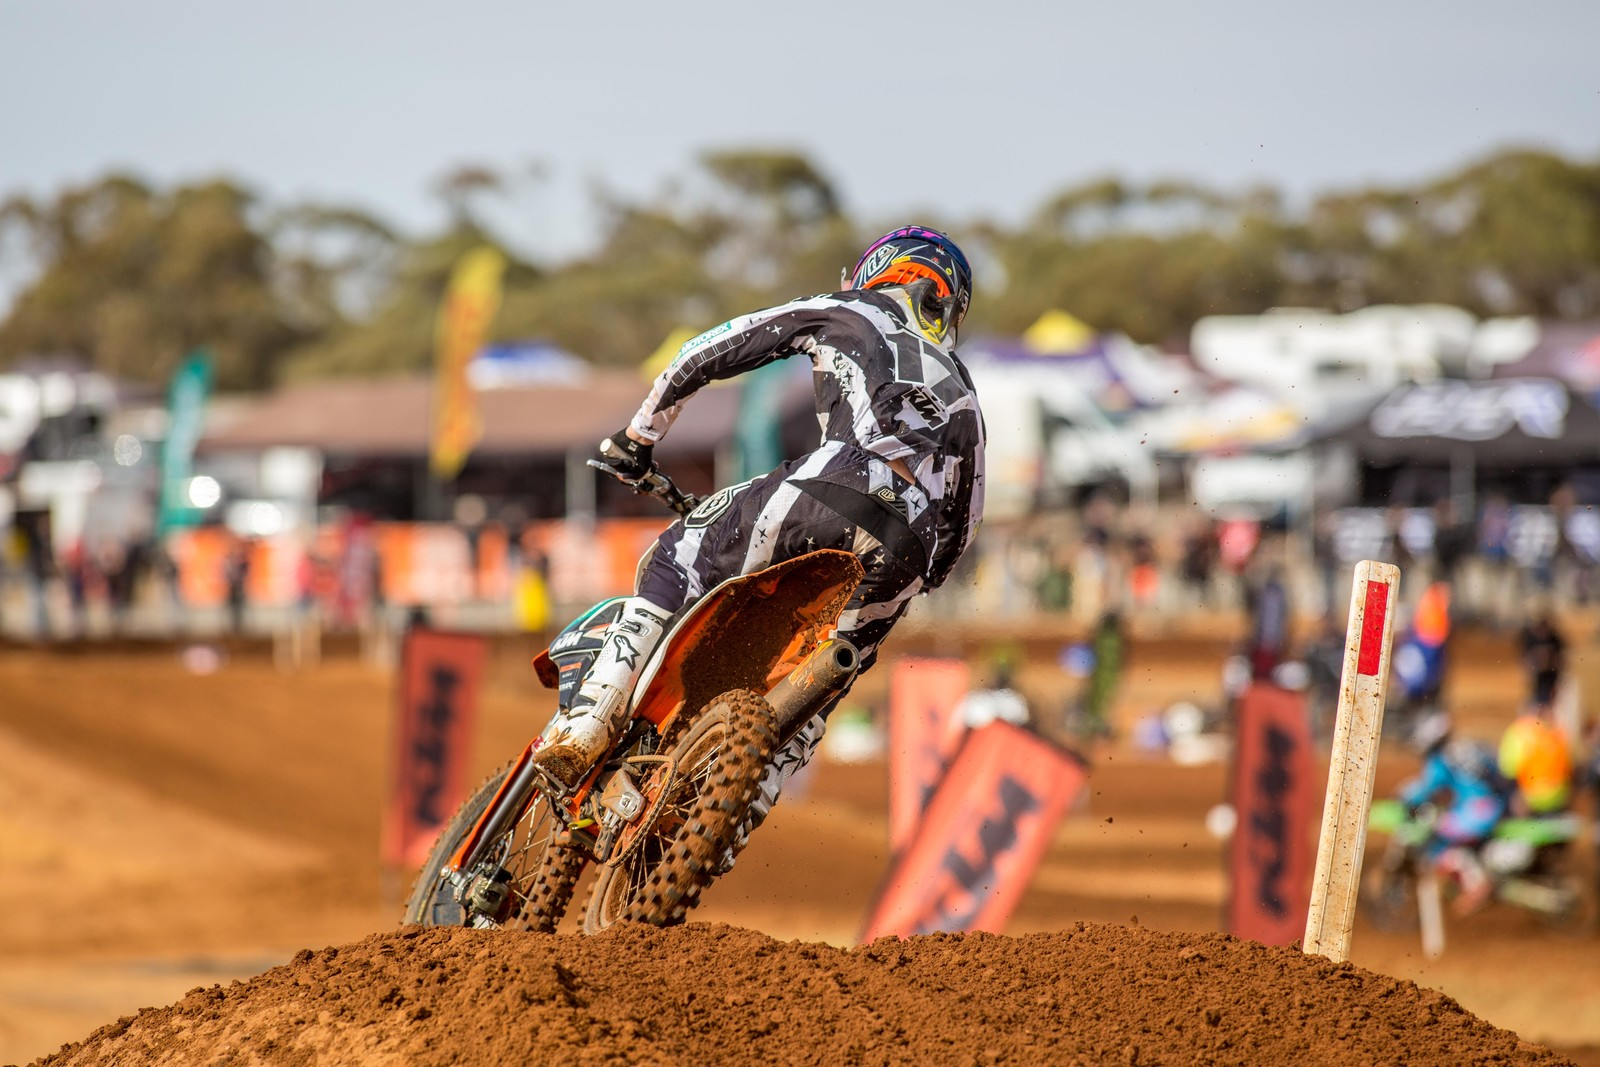 Caleb Ward - Australian Motul Mx Championships: Round 4, Murray Bridge - Motocross Pictures - Vital MX